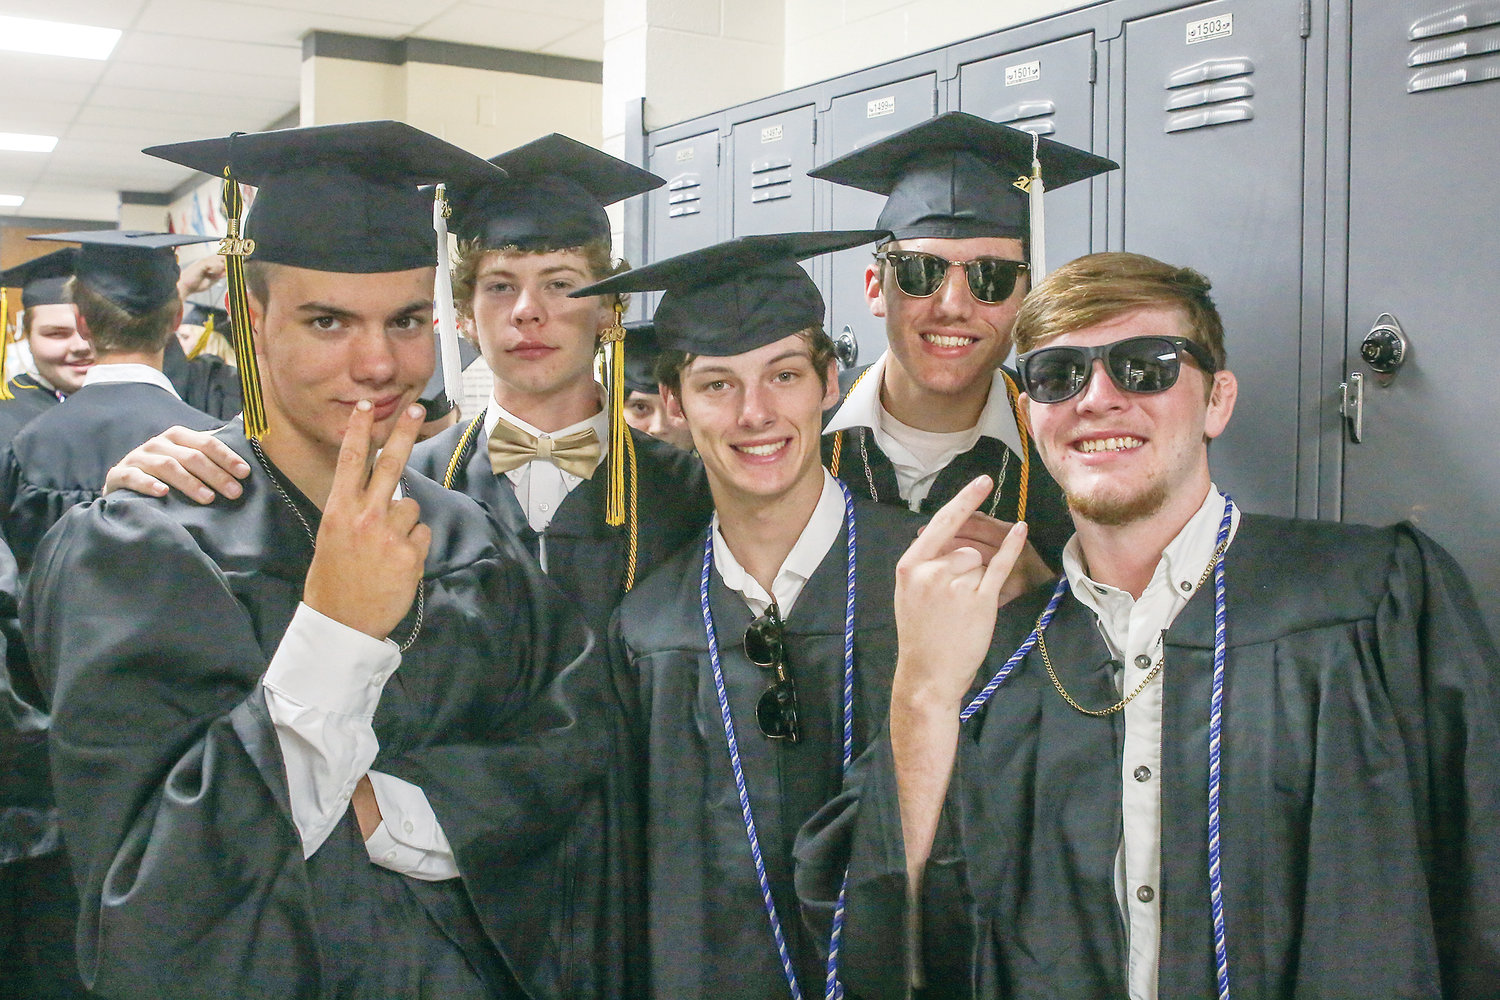 AN EXCITED CREW OF Jacob Cantrell, Colin Cartwright, Gage Brakebill, Fisher Creaseman and Skyler Bradley pose for a quick pic just before graduation.